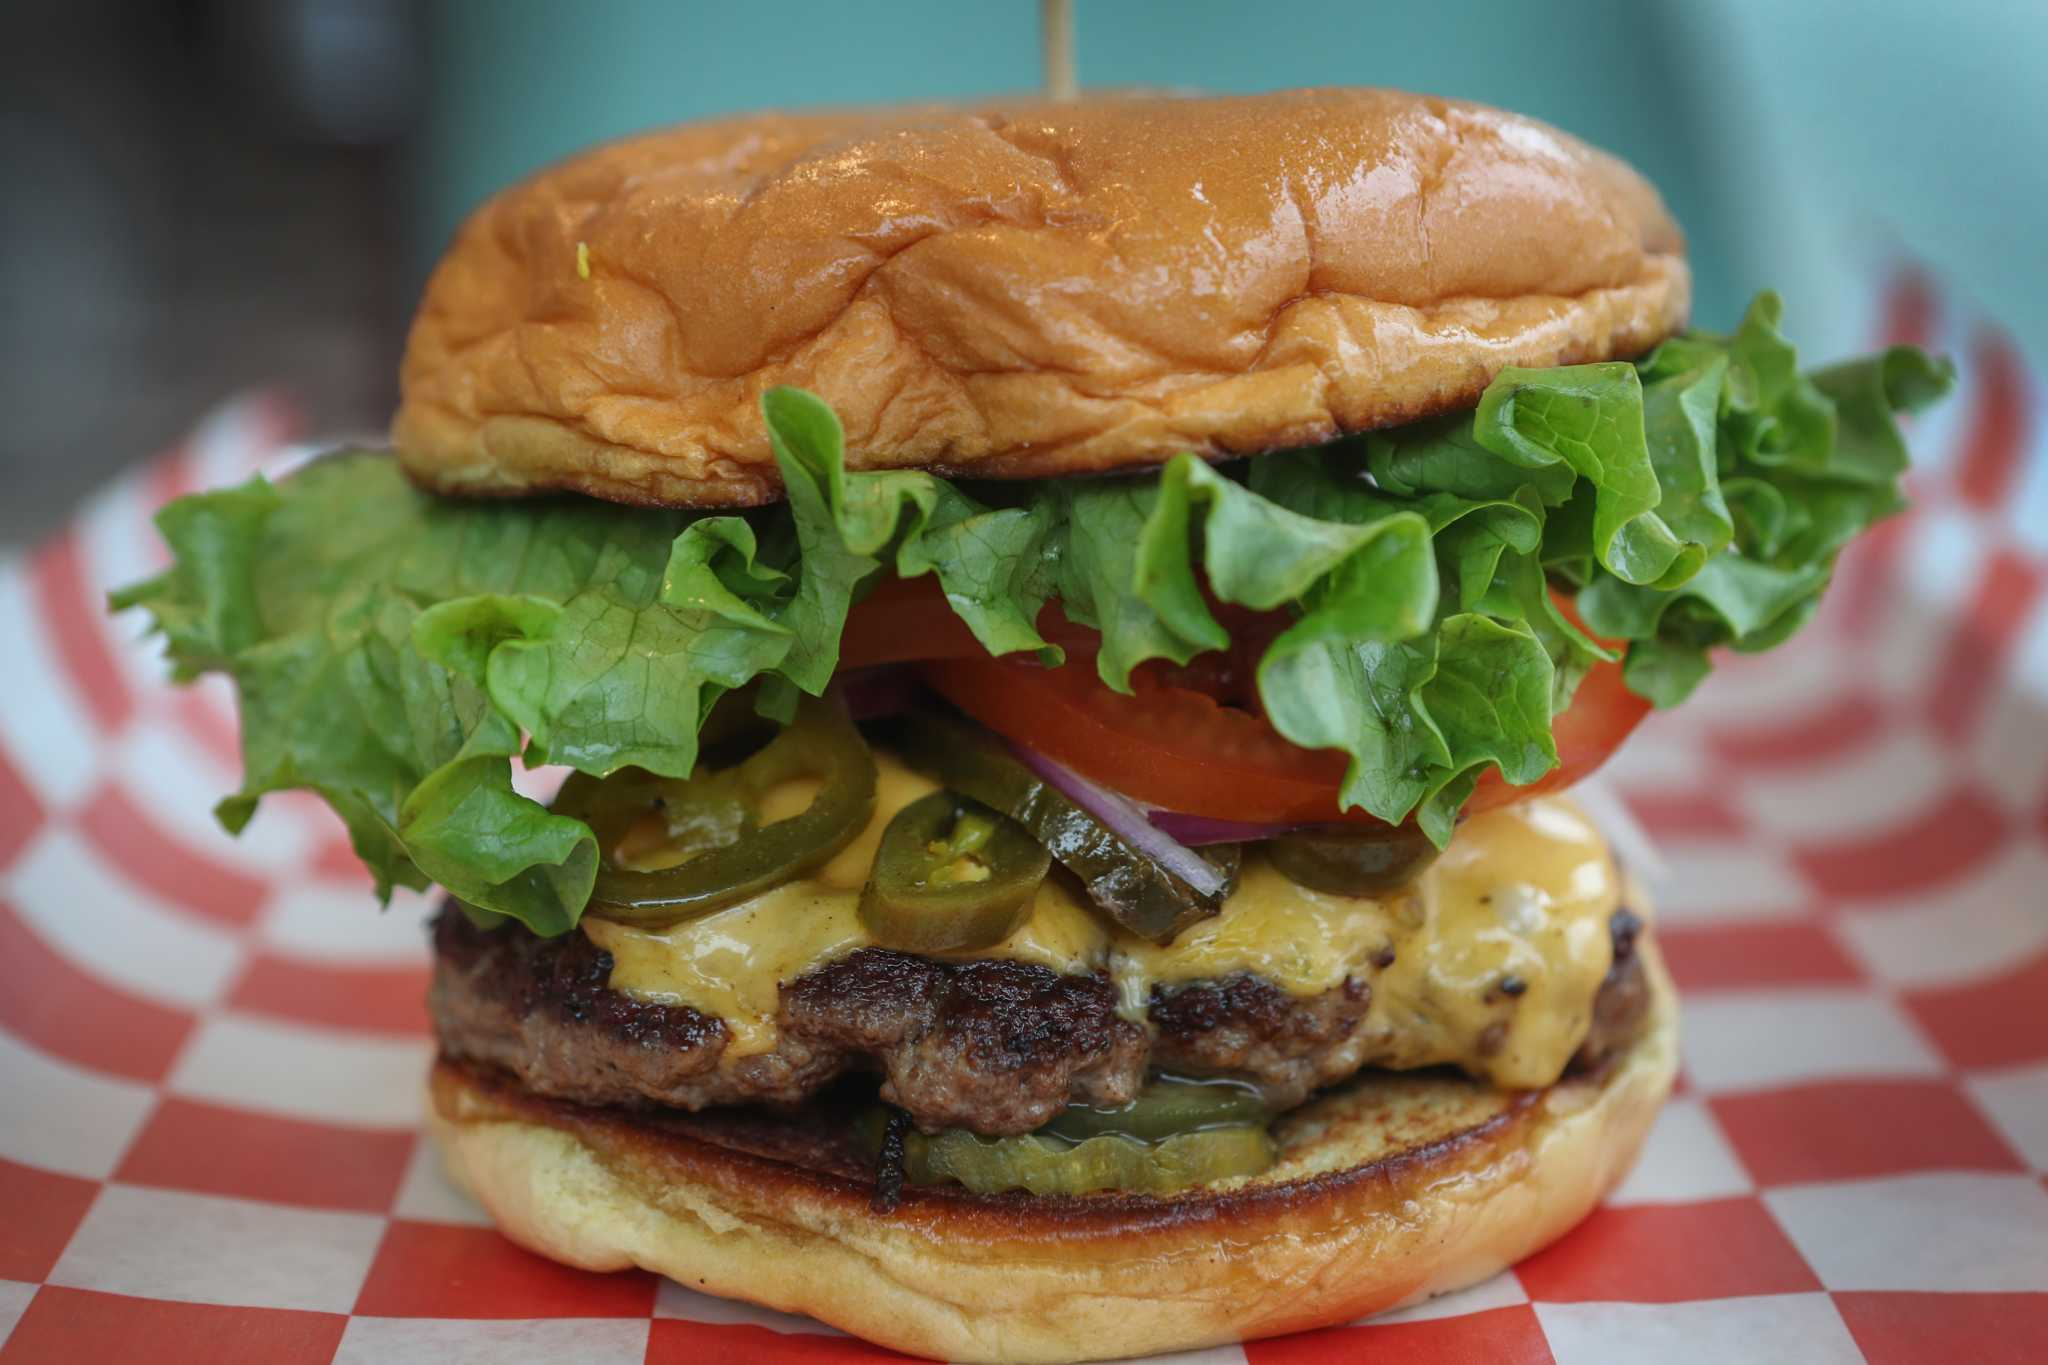 Celebrate National Cheeseburger Day with deals, including free burgers at Killen's Burger Joint